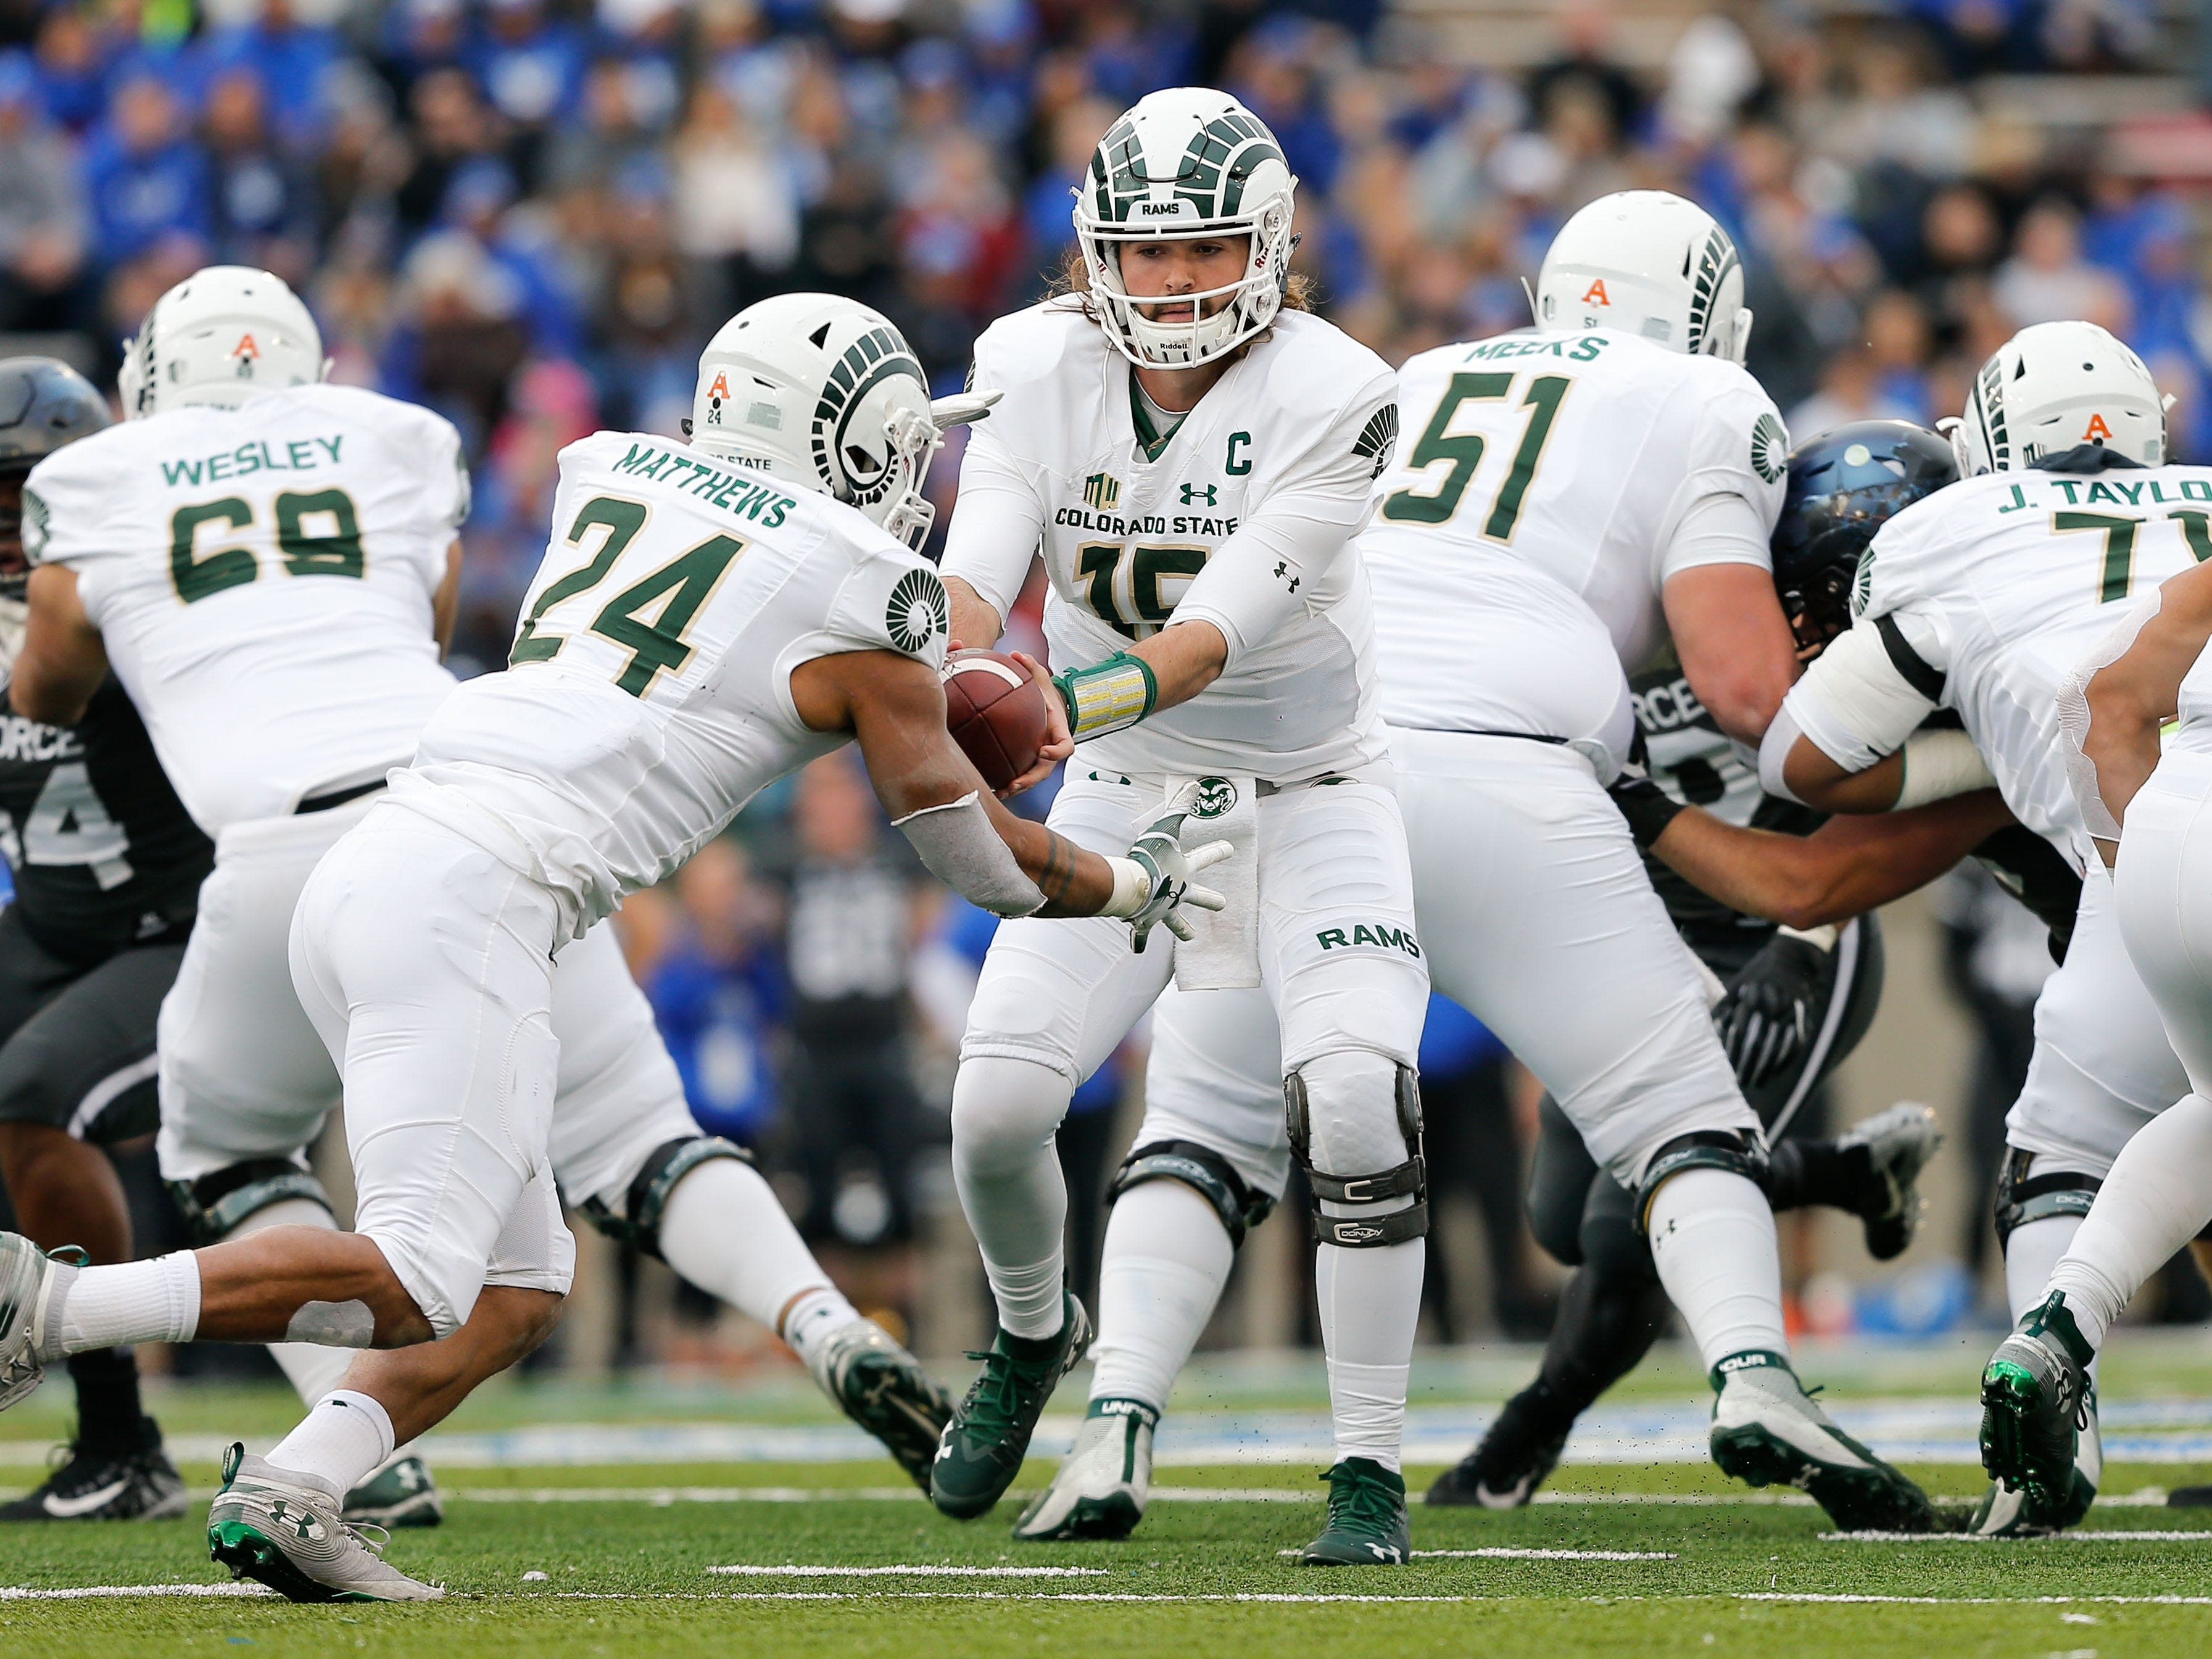 Colorado State quarterback Collin Hill  hands the ball off to running back Izzy Matthews during their game against Air Force.